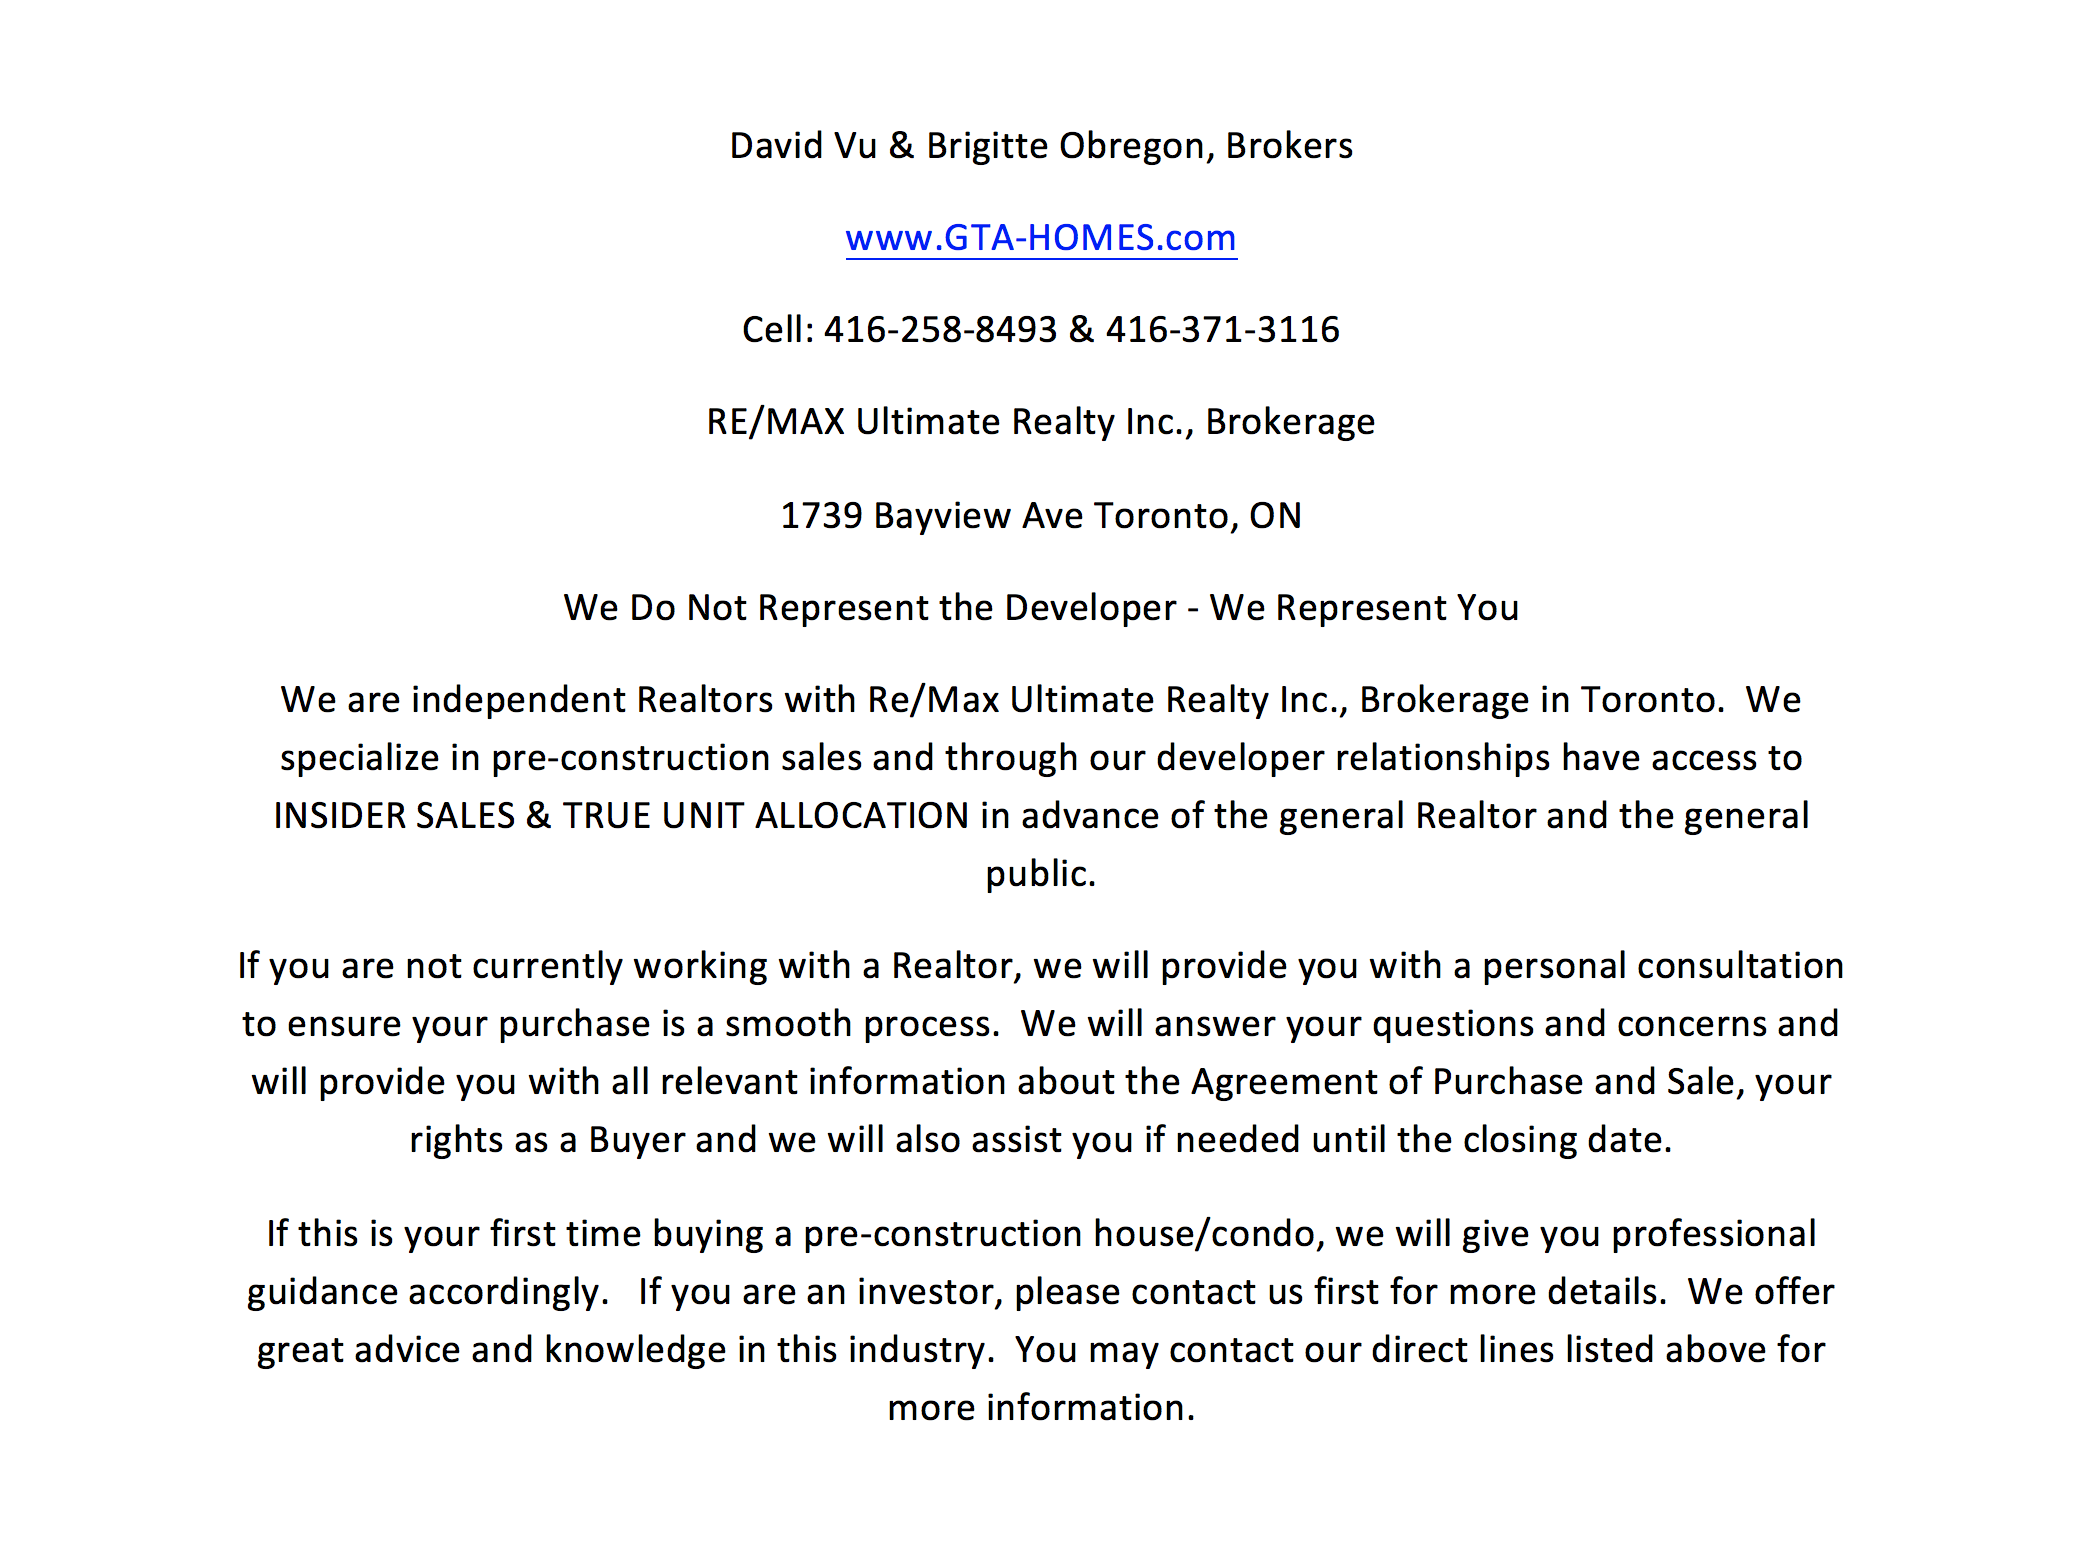 High-Rise Sales Contact Info